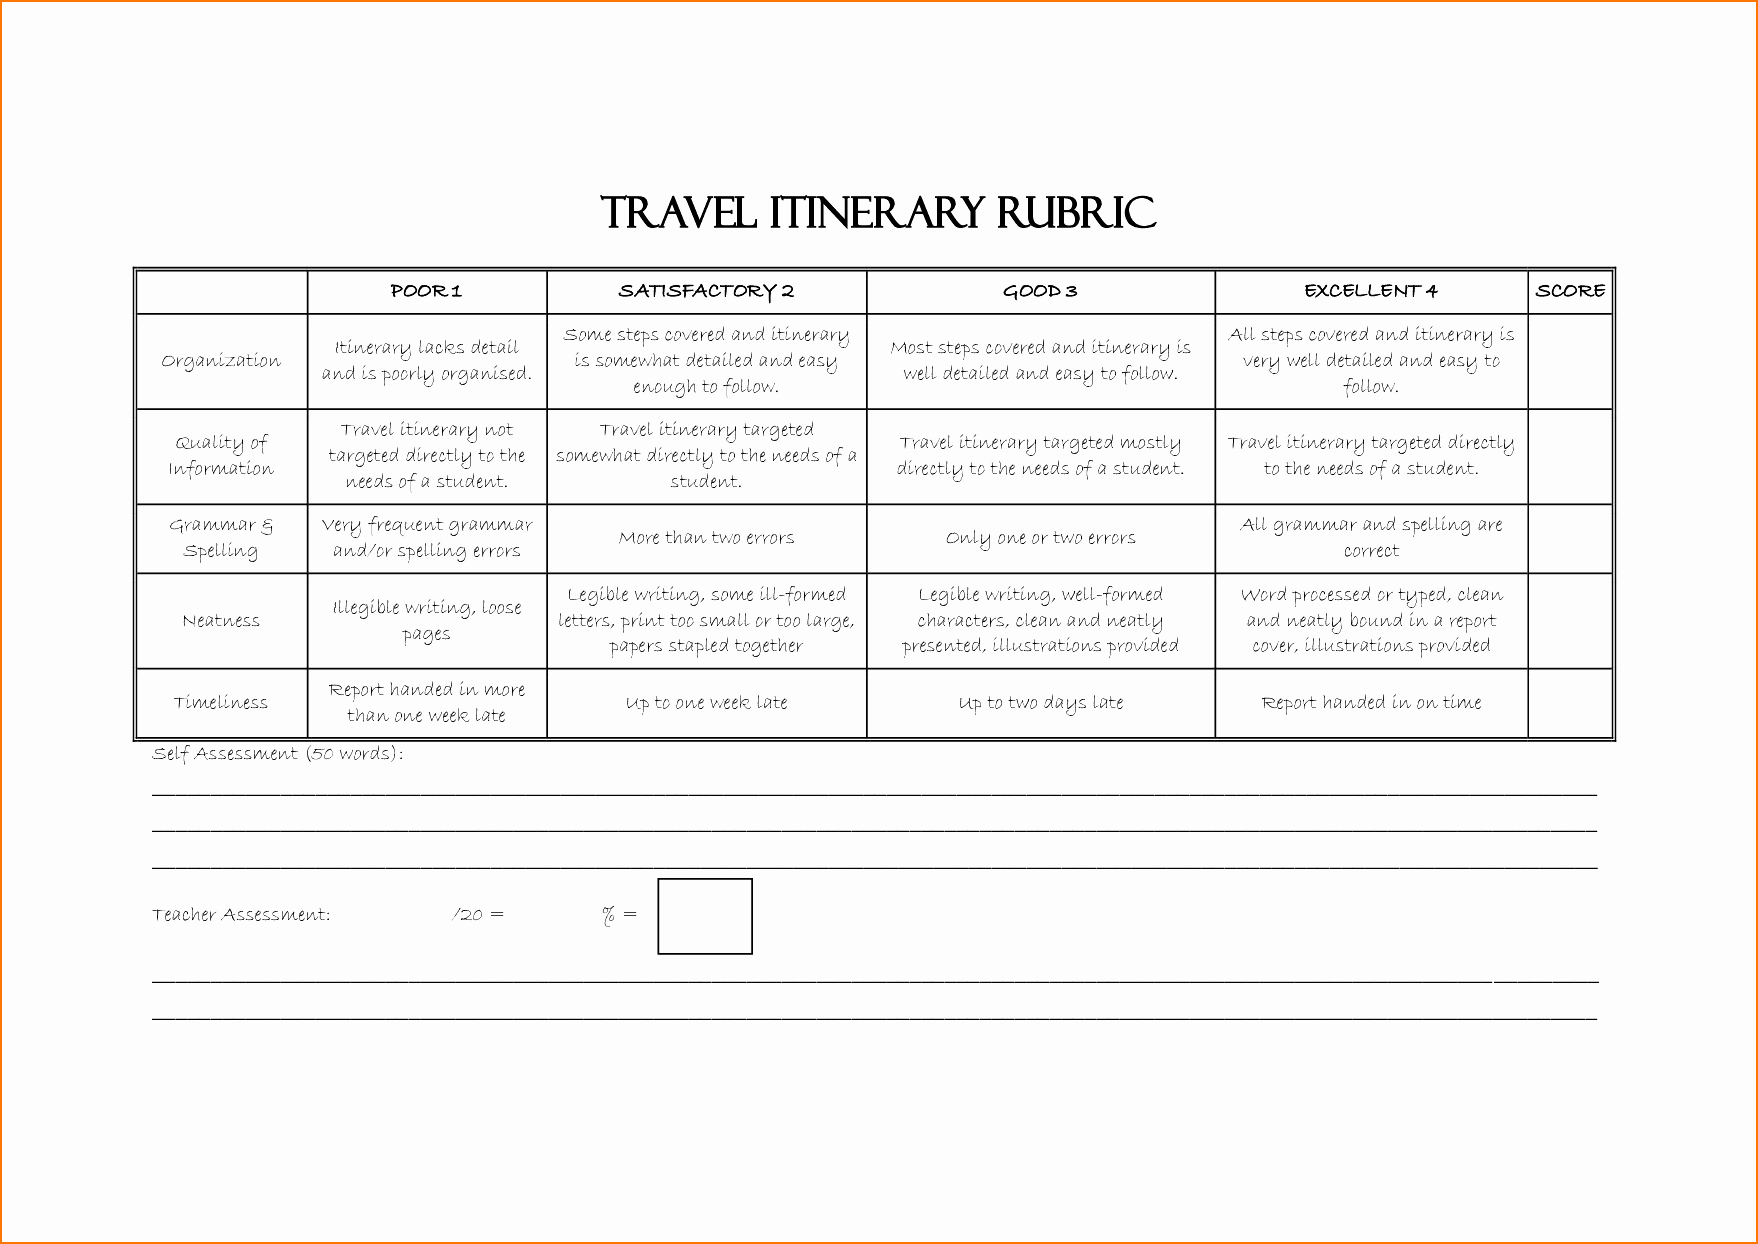 Travel Itinerary Template Word 2010 Beautiful Travel Itinerary Template Microsoft Word Business Excel